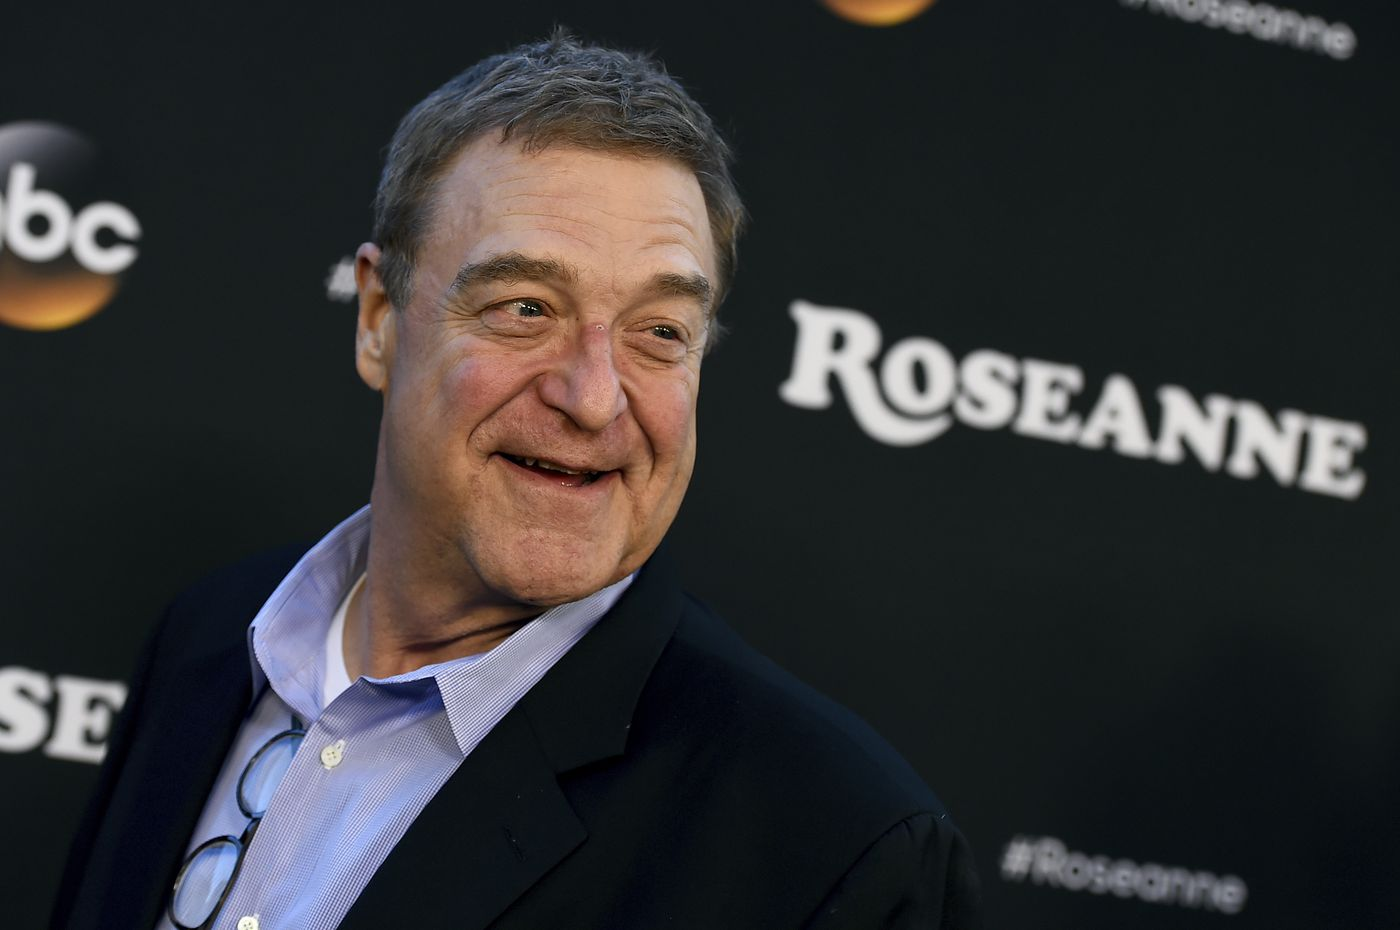 John Goodman reveals Roseanne will be killed off in 'The Conners' spinoff